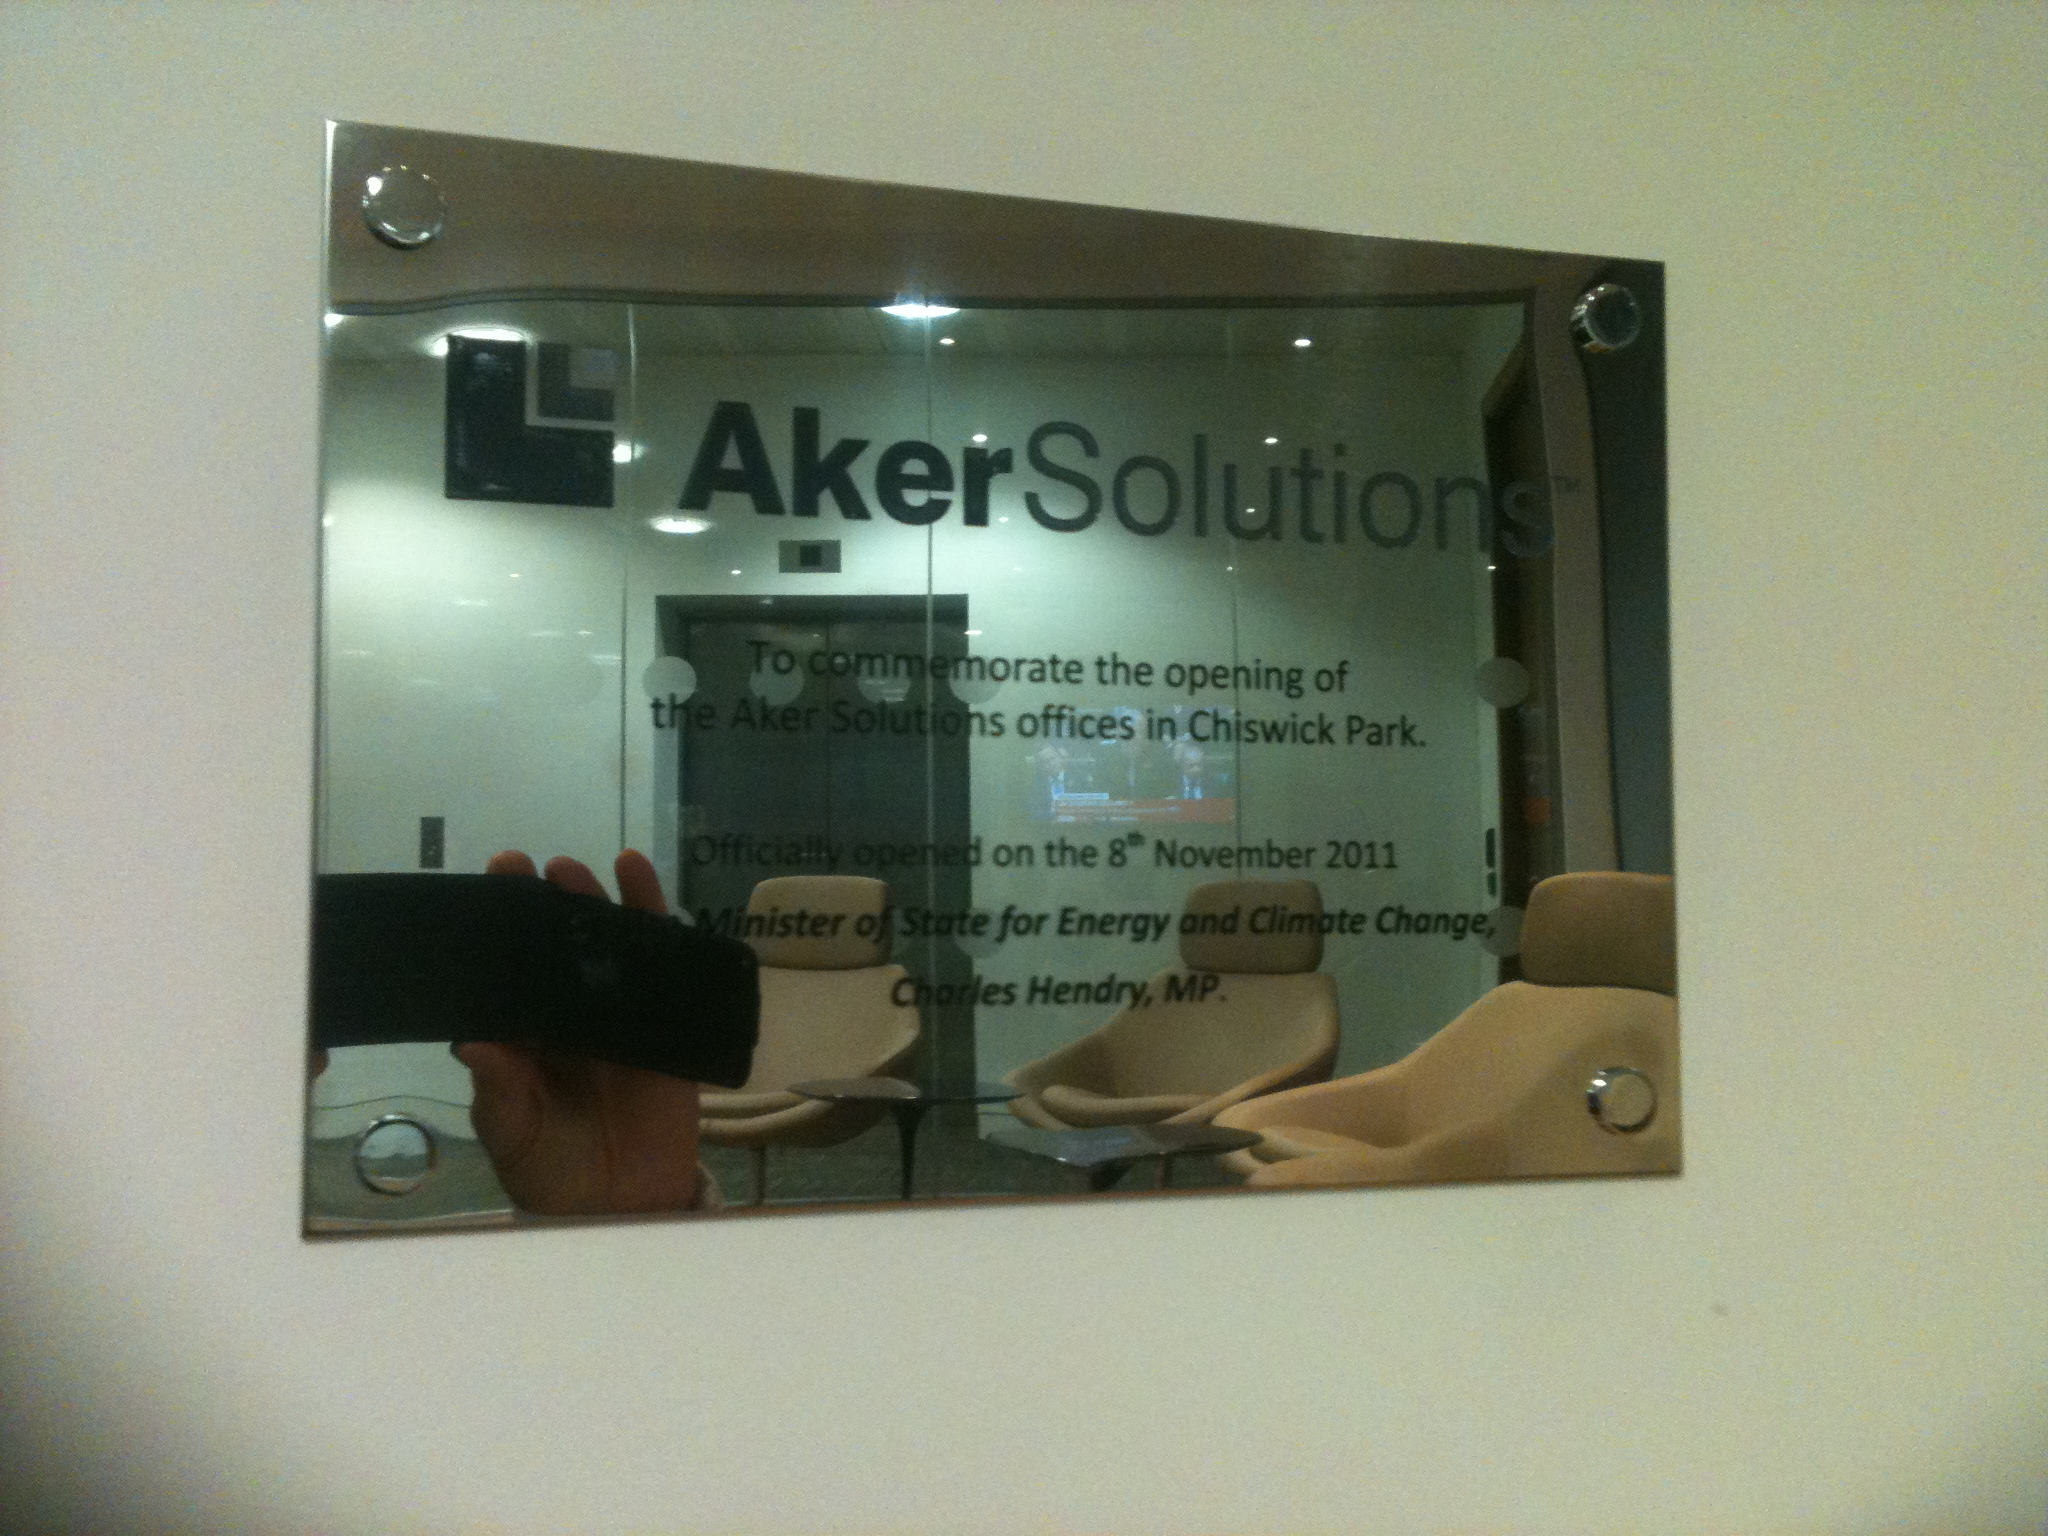 Engraved Plaques www.e-signs.co.uk 0208 1331819 E Signs ® Aker solutions